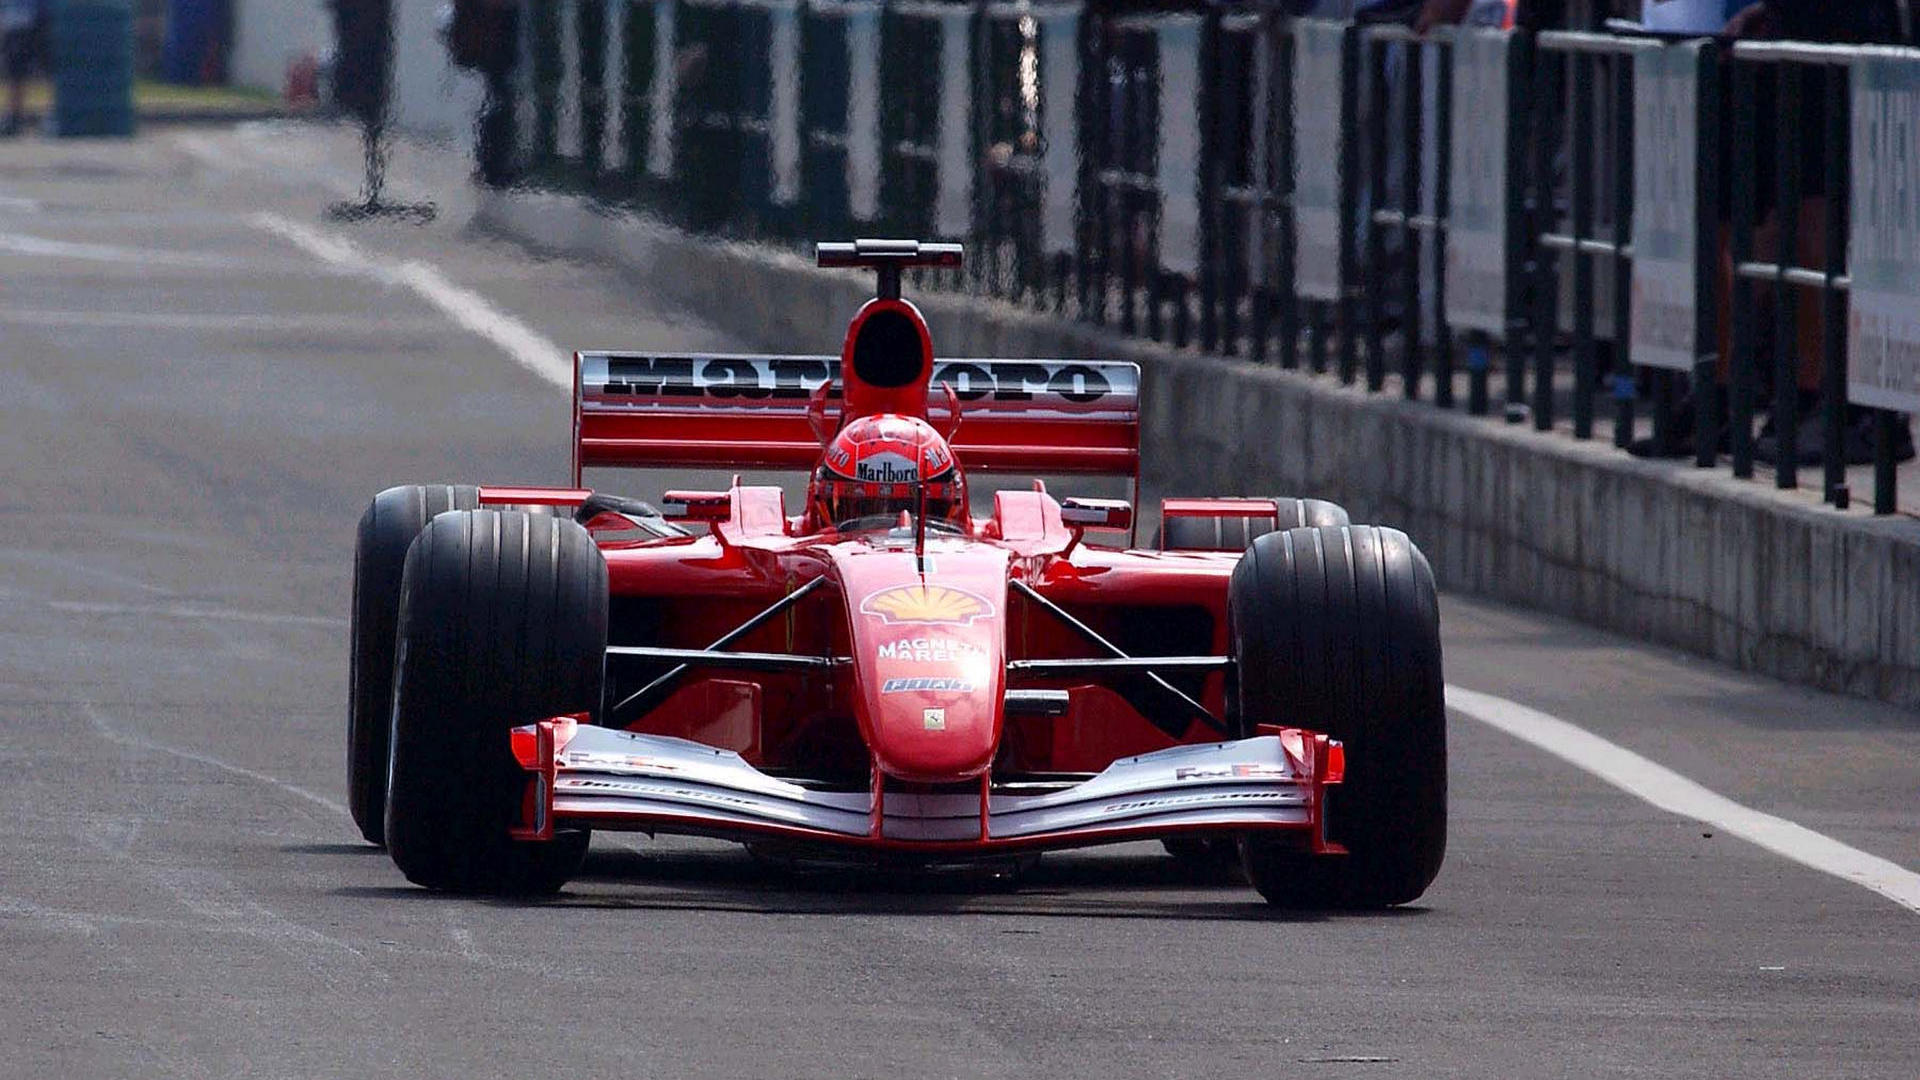 ferrari f2001 michael schumacher - photo #34